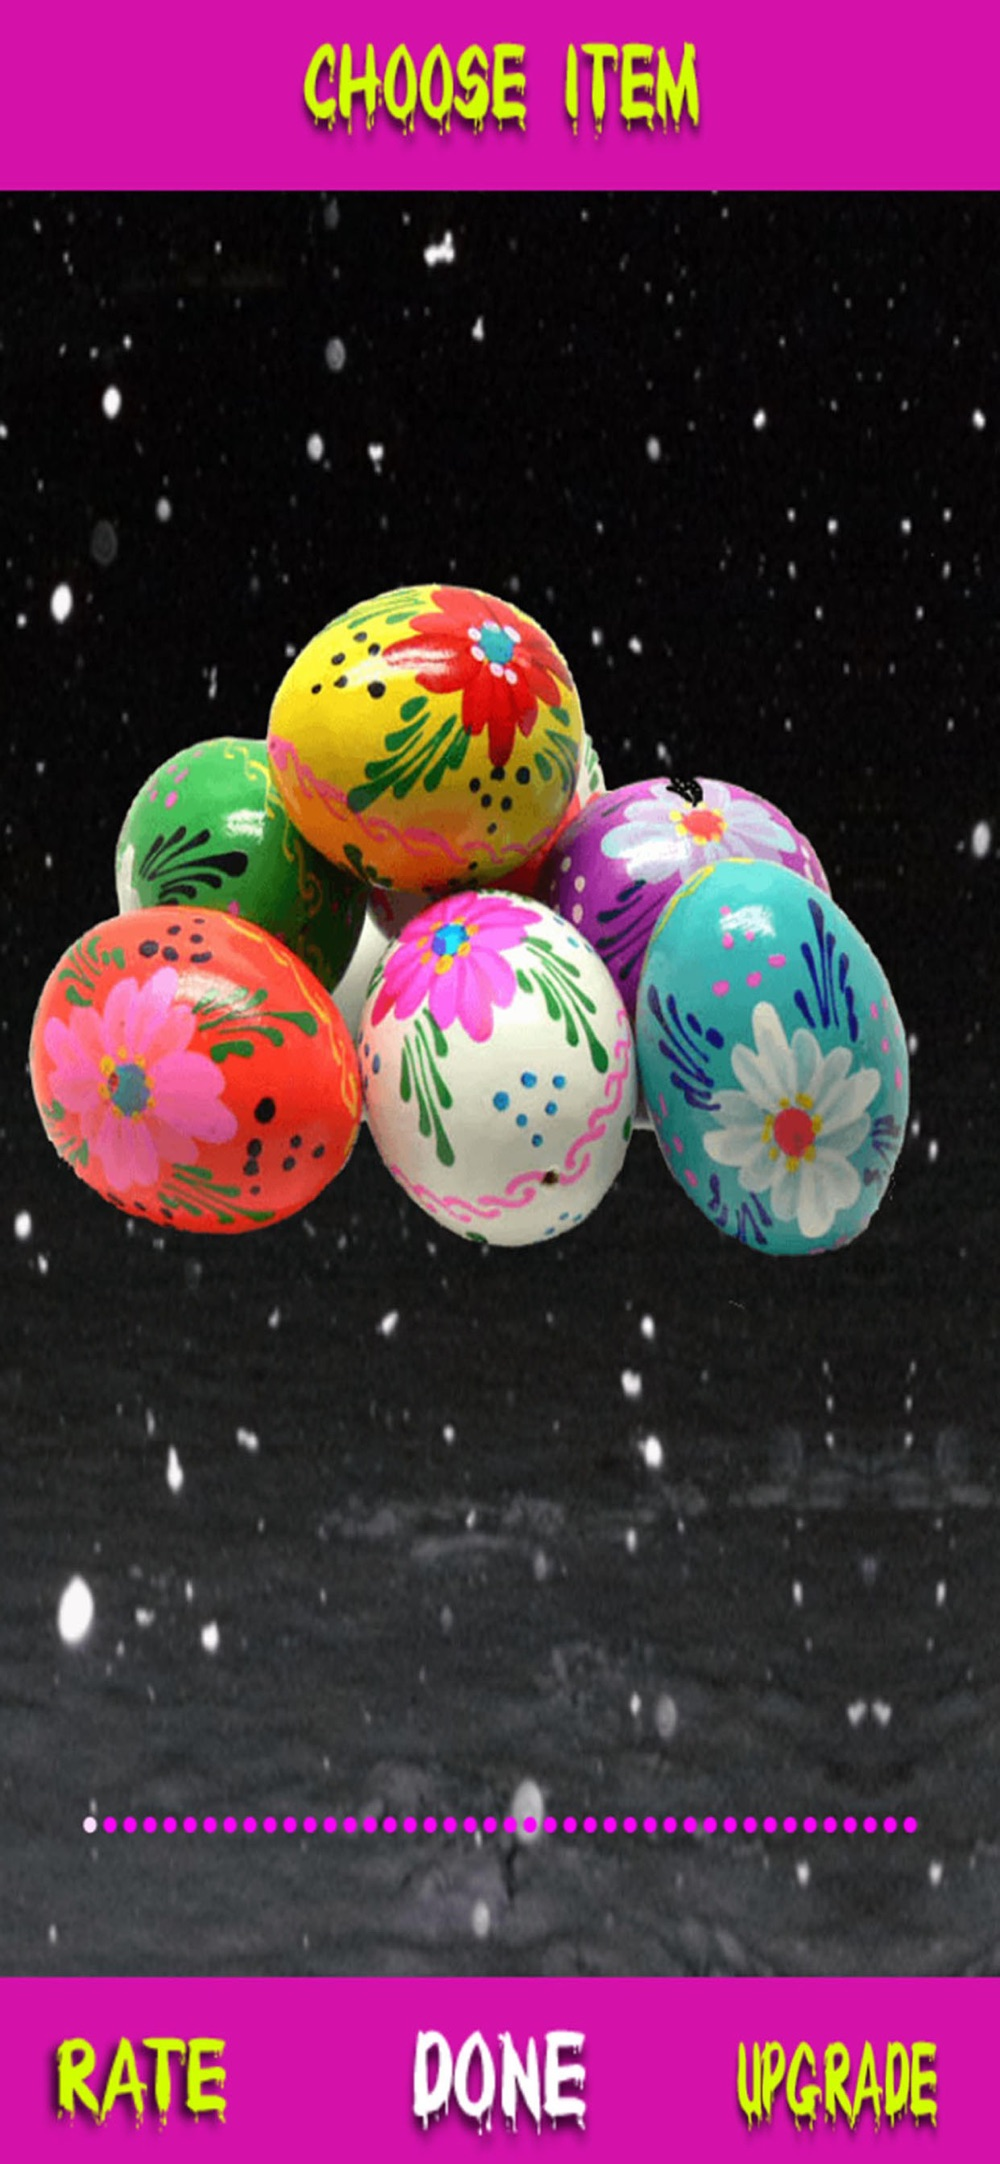 Happy Easter Day- Photo Editor hack tool